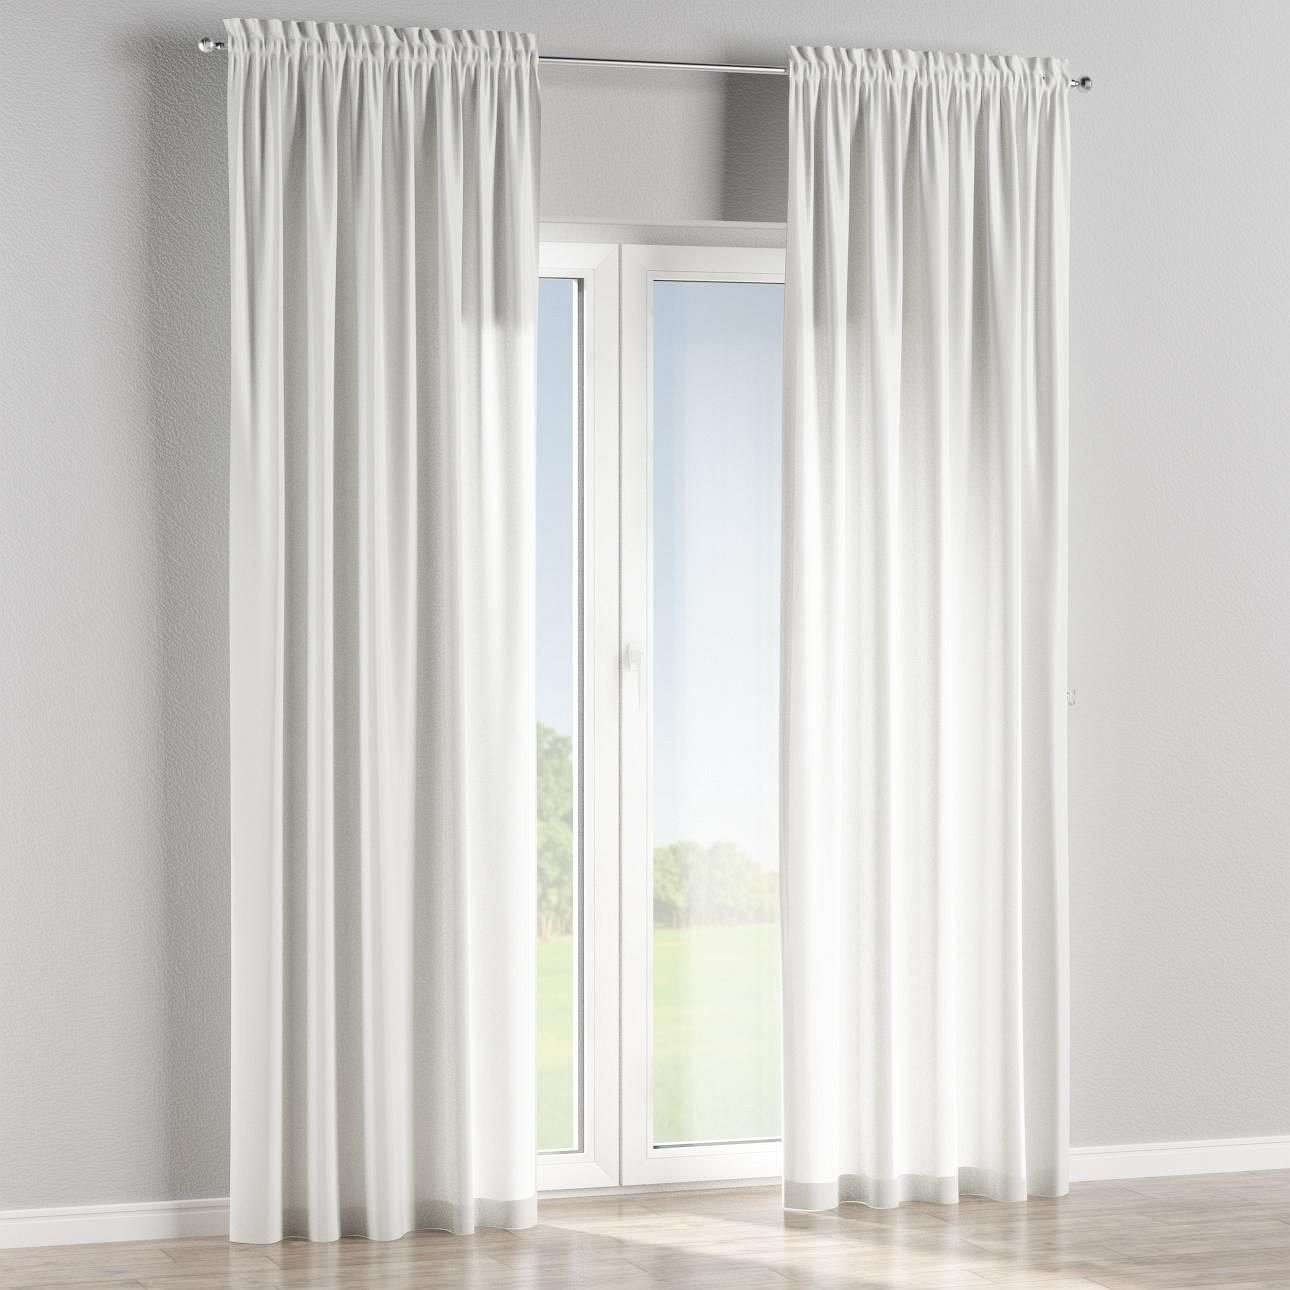 Slot and frill lined curtains in collection Aquarelle, fabric: 140-68